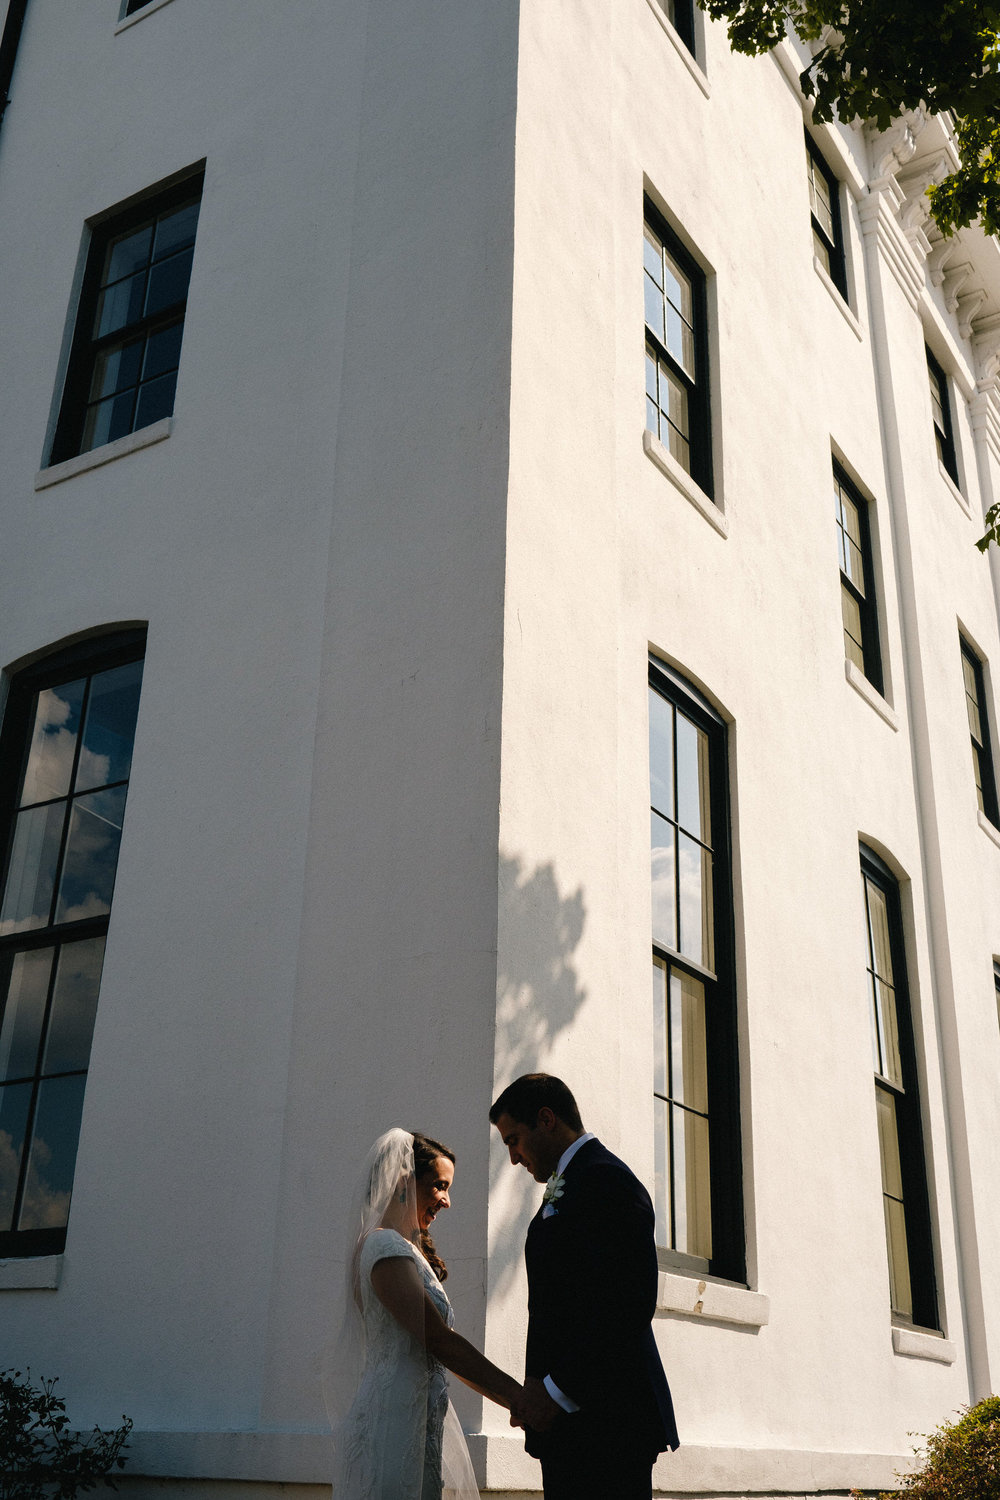 Oxford_mississippi_wedding_photographer_024.jpg